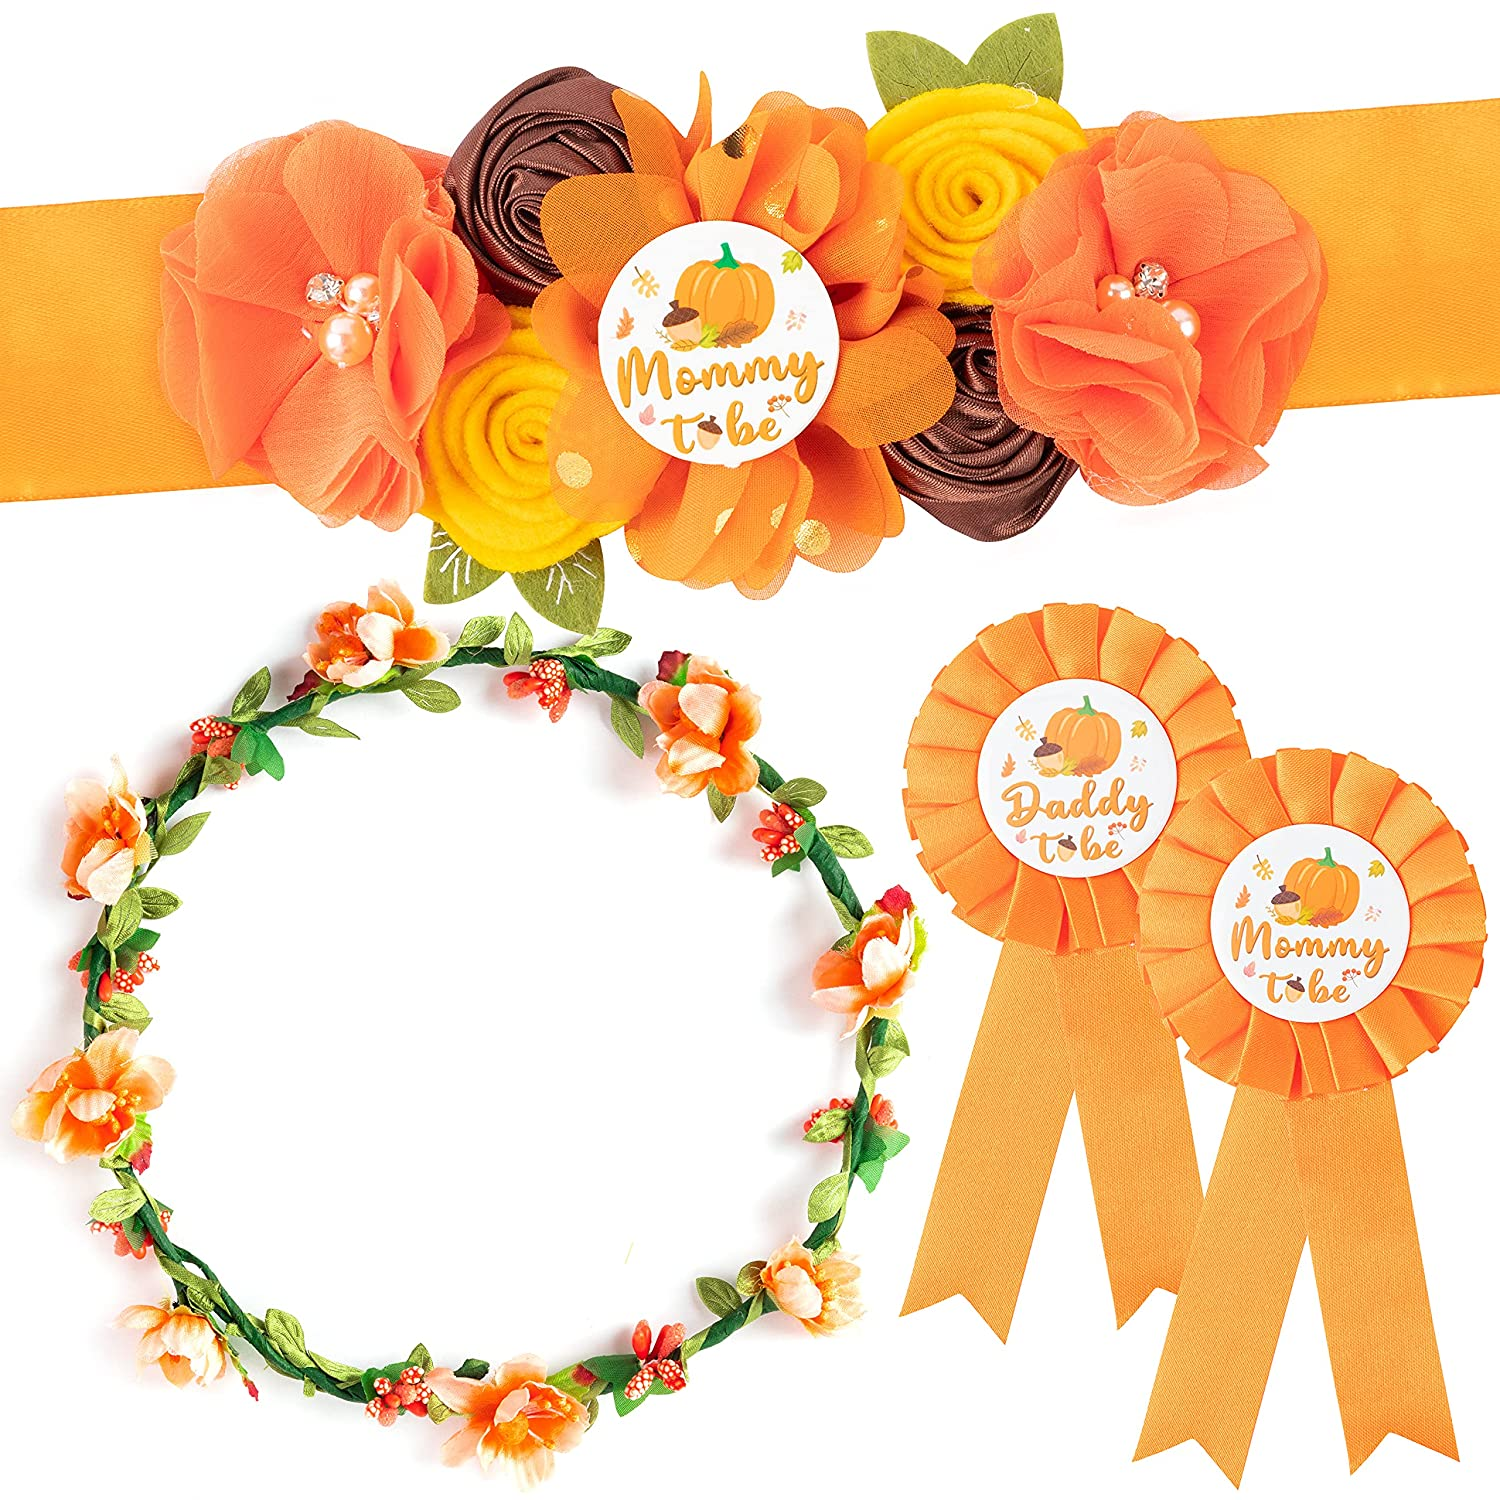 5Pcs Pumpkin Maternity Sash Set, Happy Fall Theme Mommy to Be & Daddy to Be Corsage Pins, Flower Crown and Pregnancy Sash Keepsake for Autumn Pumpkin Gender Reveal Baby Shower Party Photo Prop Gift